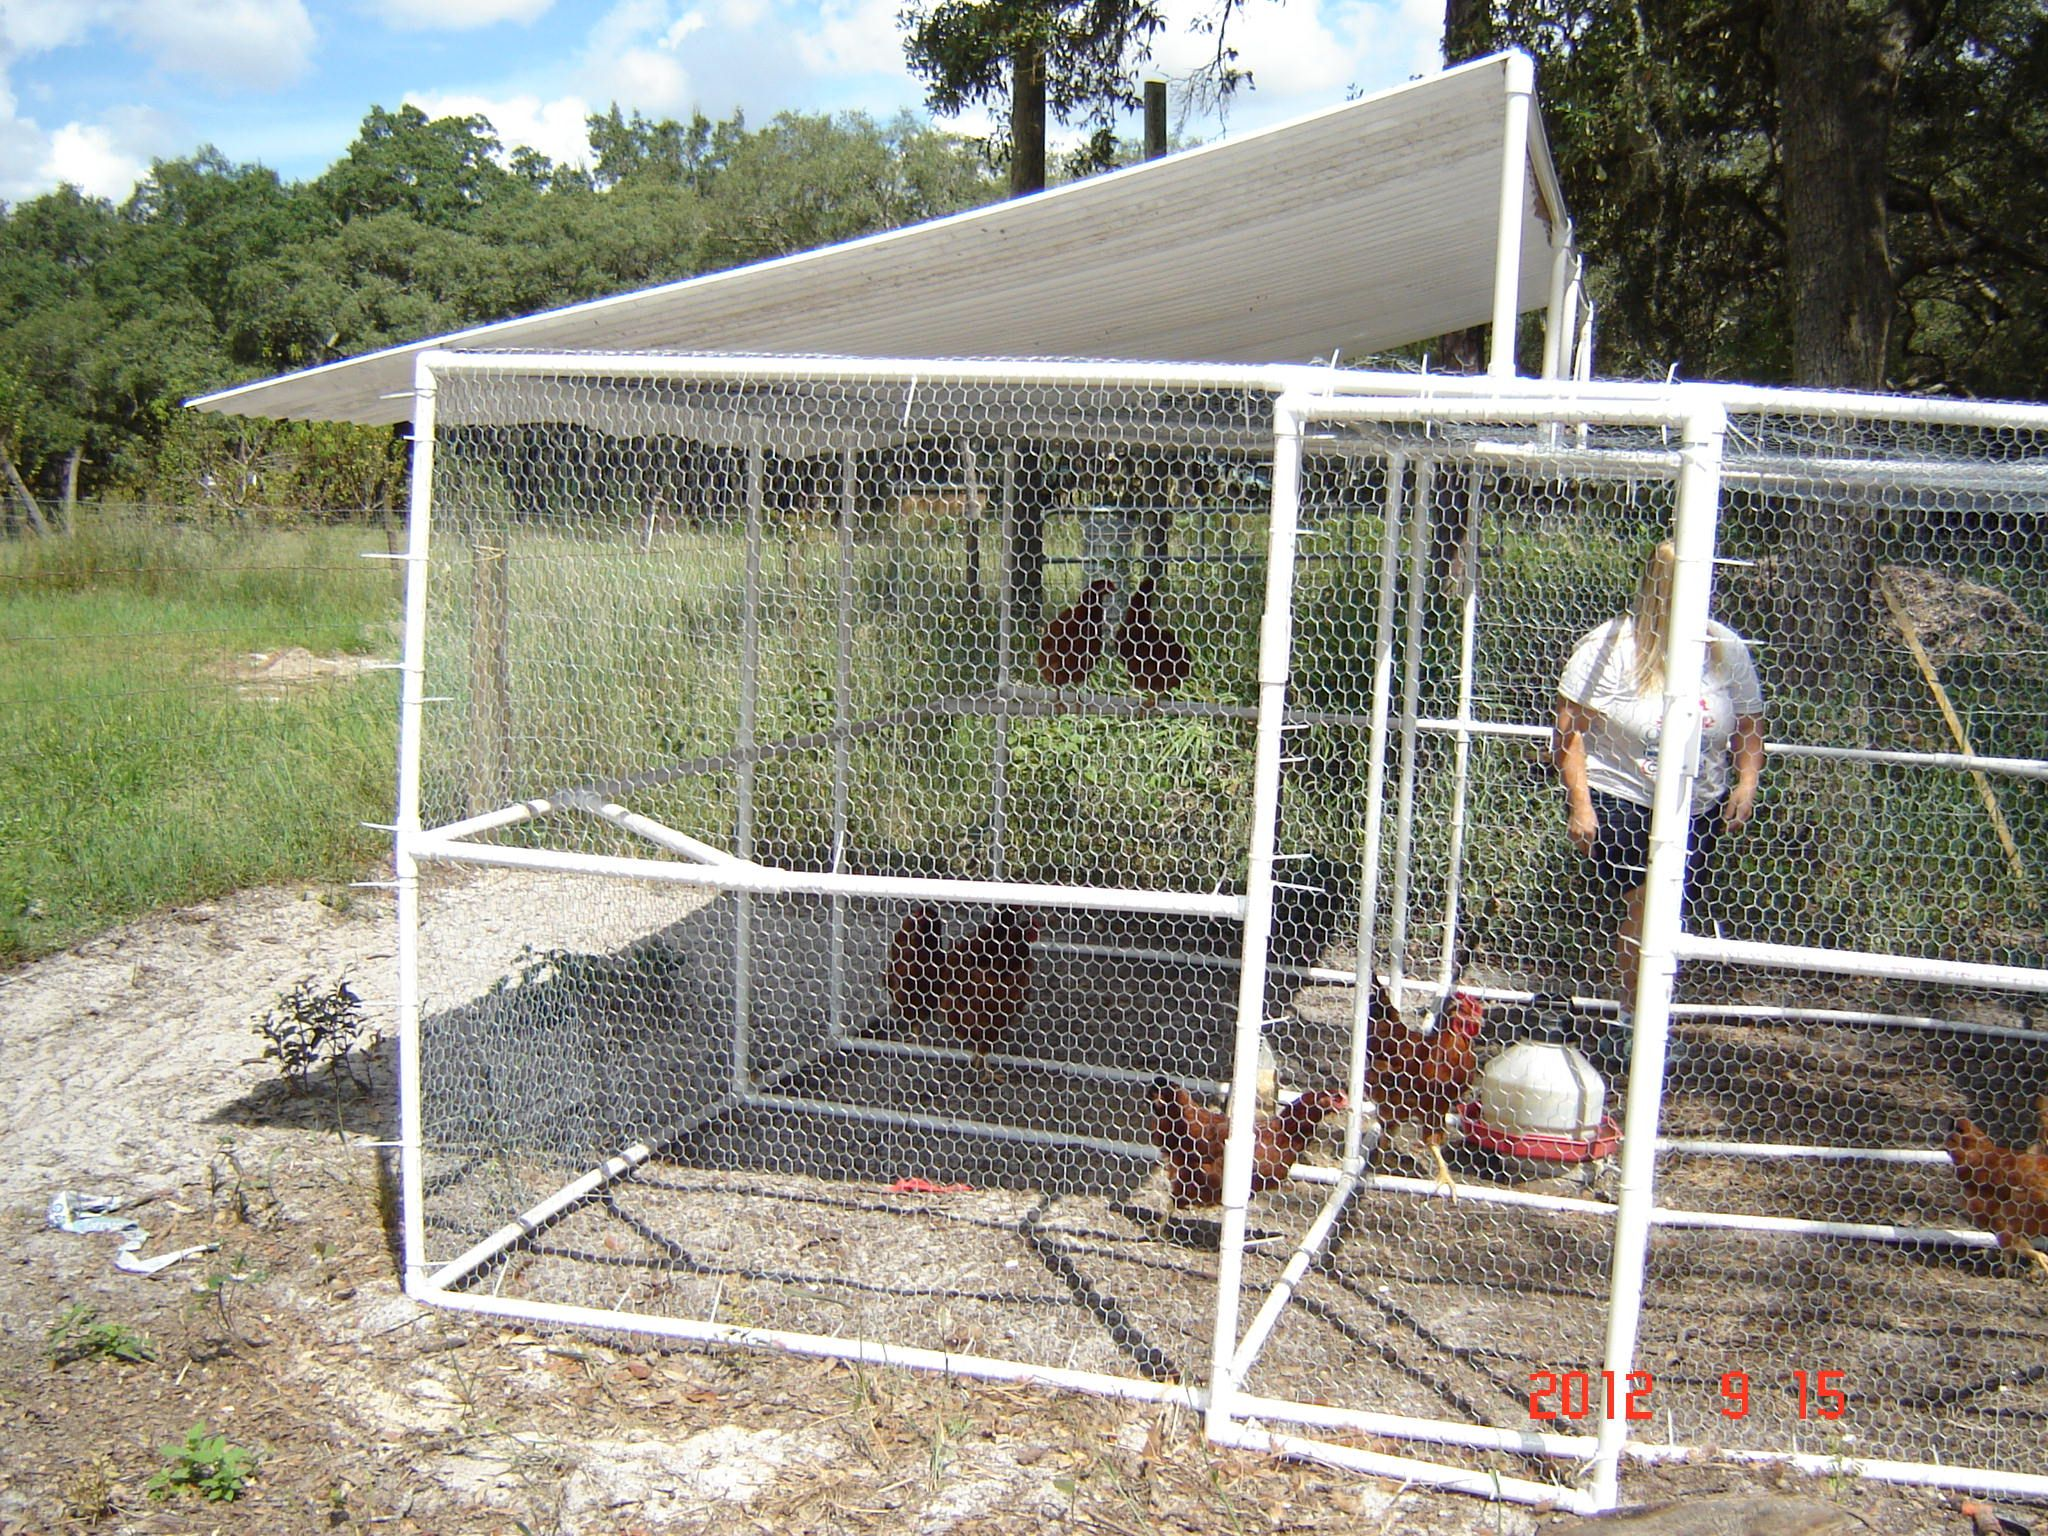 Pictures of a build it yourself pvc chicken pen for Chicken coop made from pvc